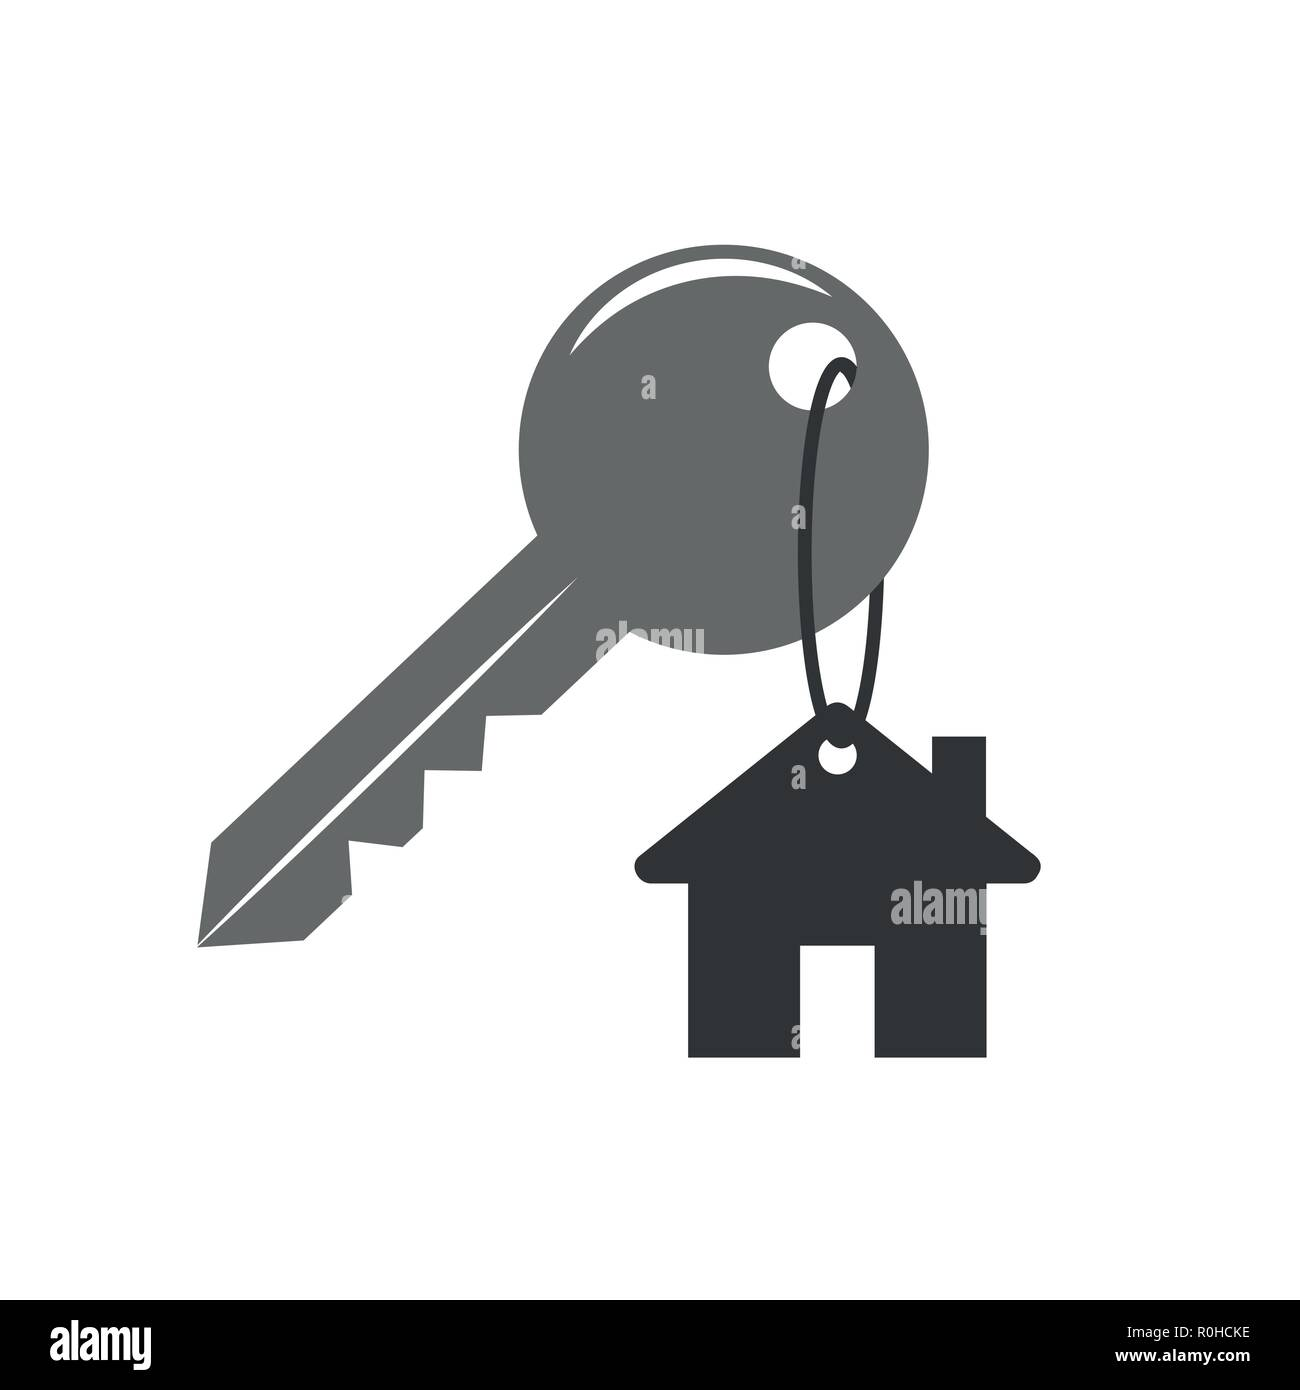 house key security icon vector illustration EPS10 - Stock Vector